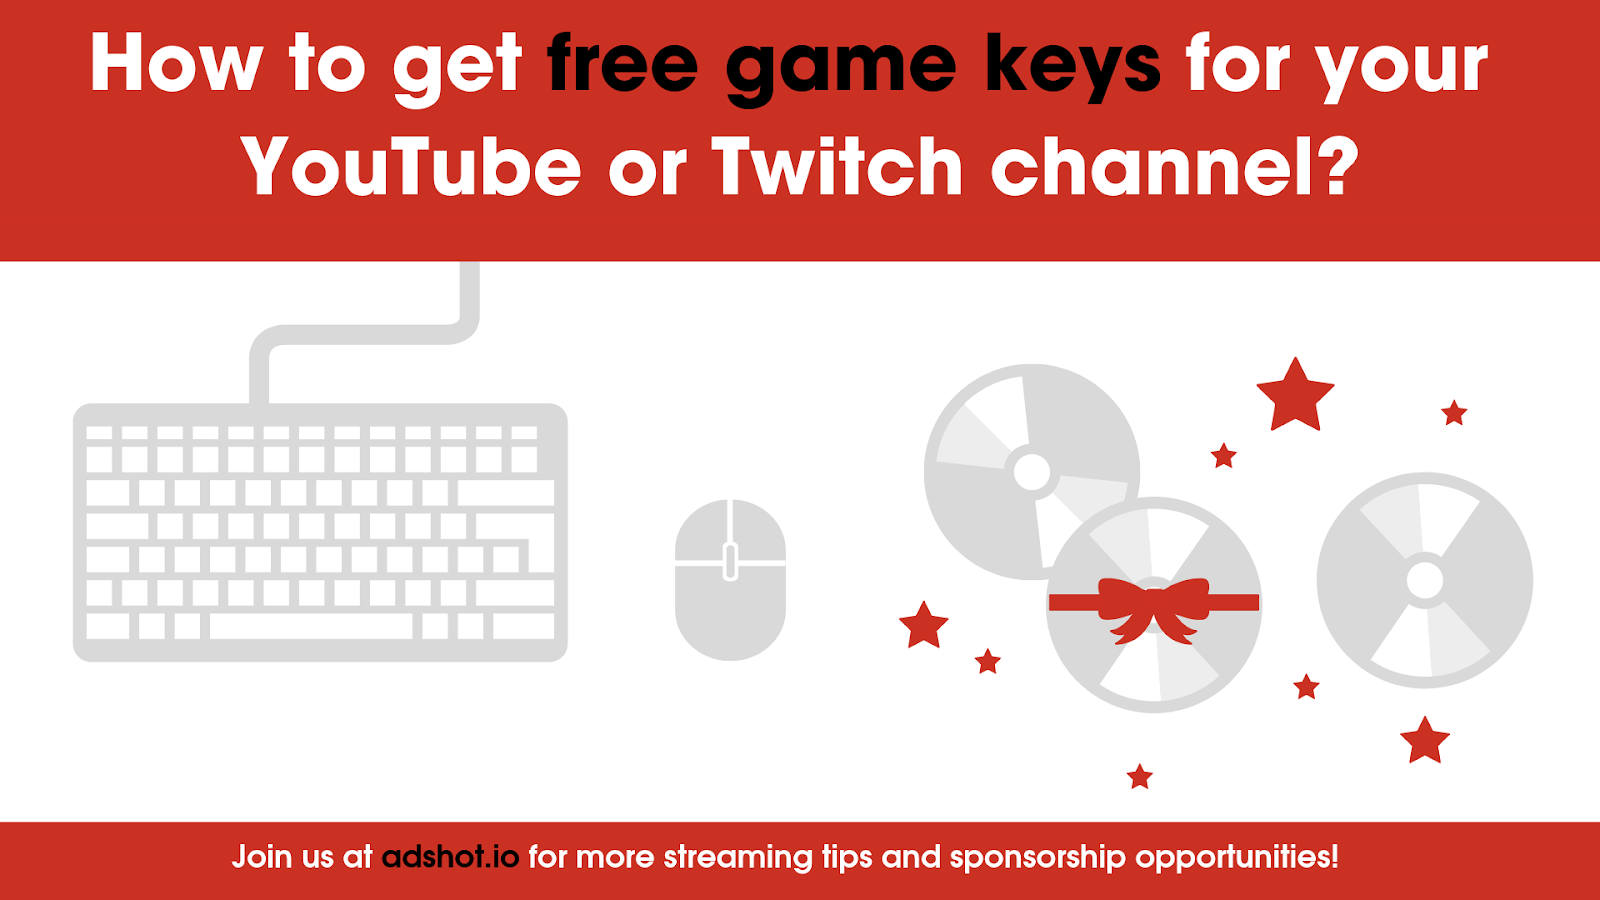 How to get free game keys for your YouTube or Twitch channel